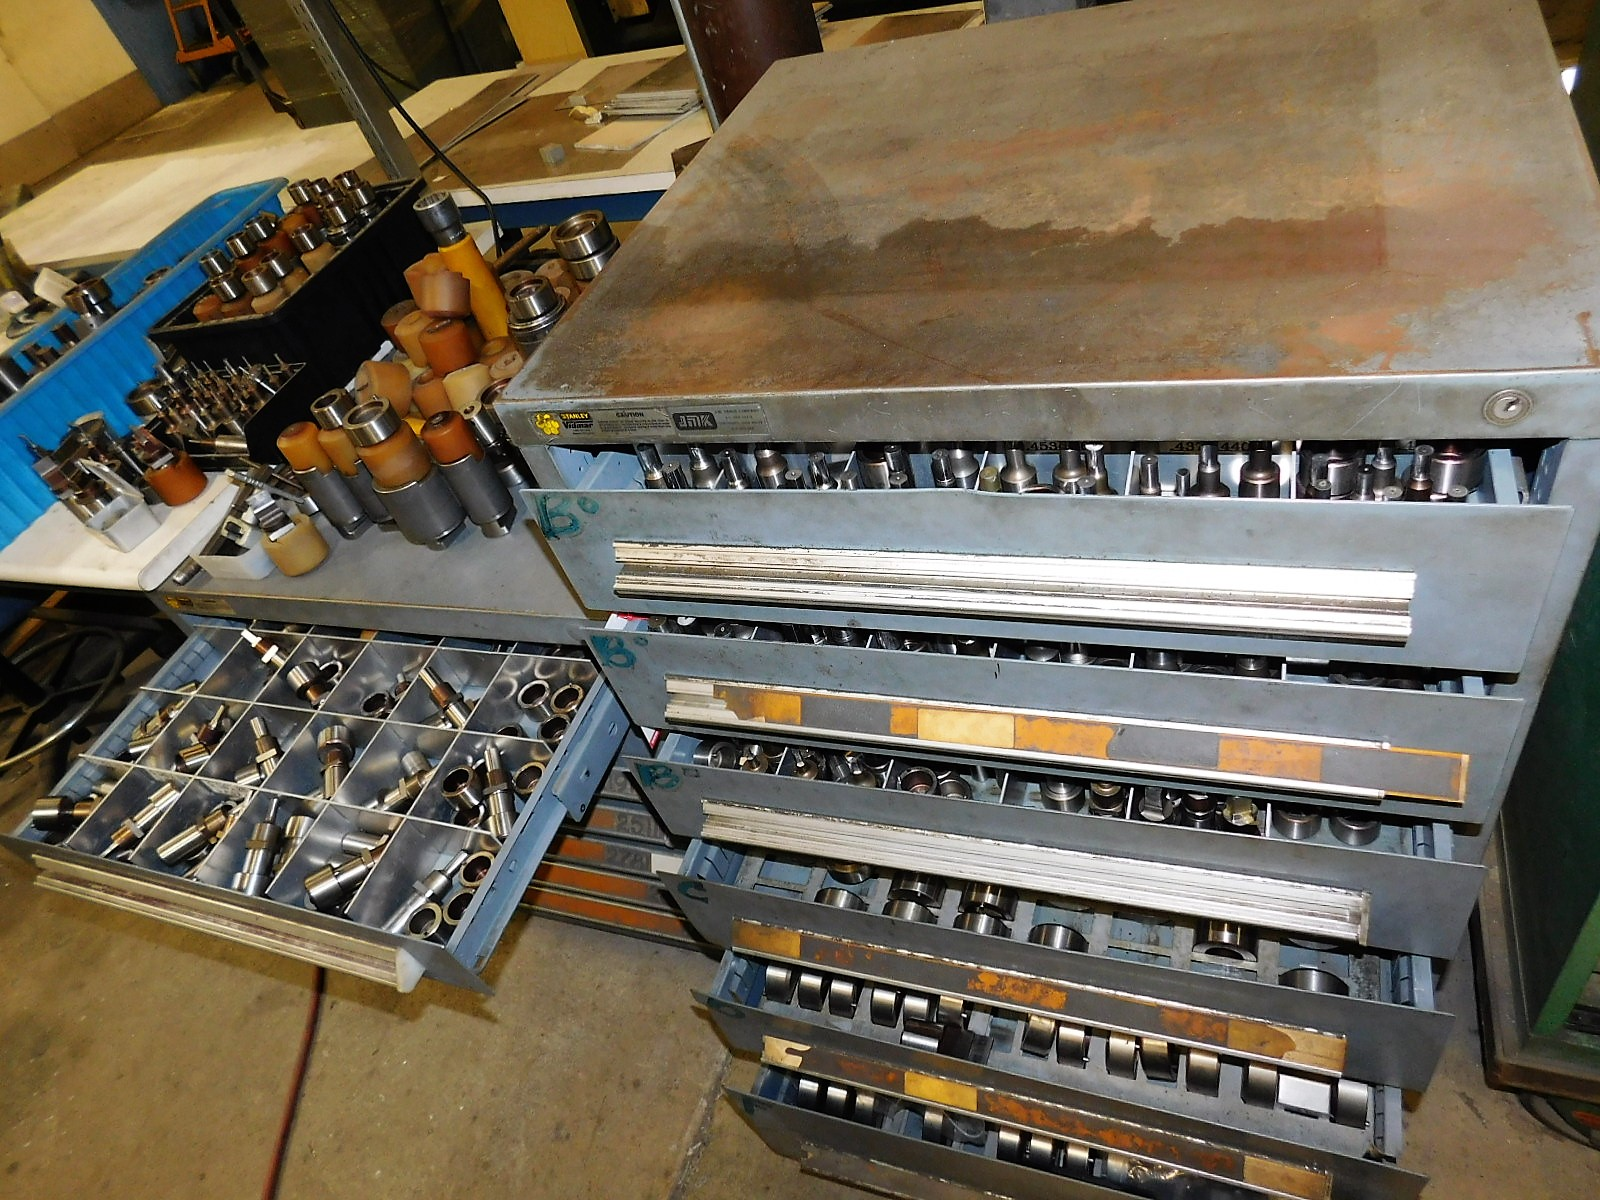 Lot 6 - LOT - (2) CABINETS W/ CONTENTS INSIDE & ON TOP OF TOOLING FOR THE WIEDEMANN CENTRUM C-1000